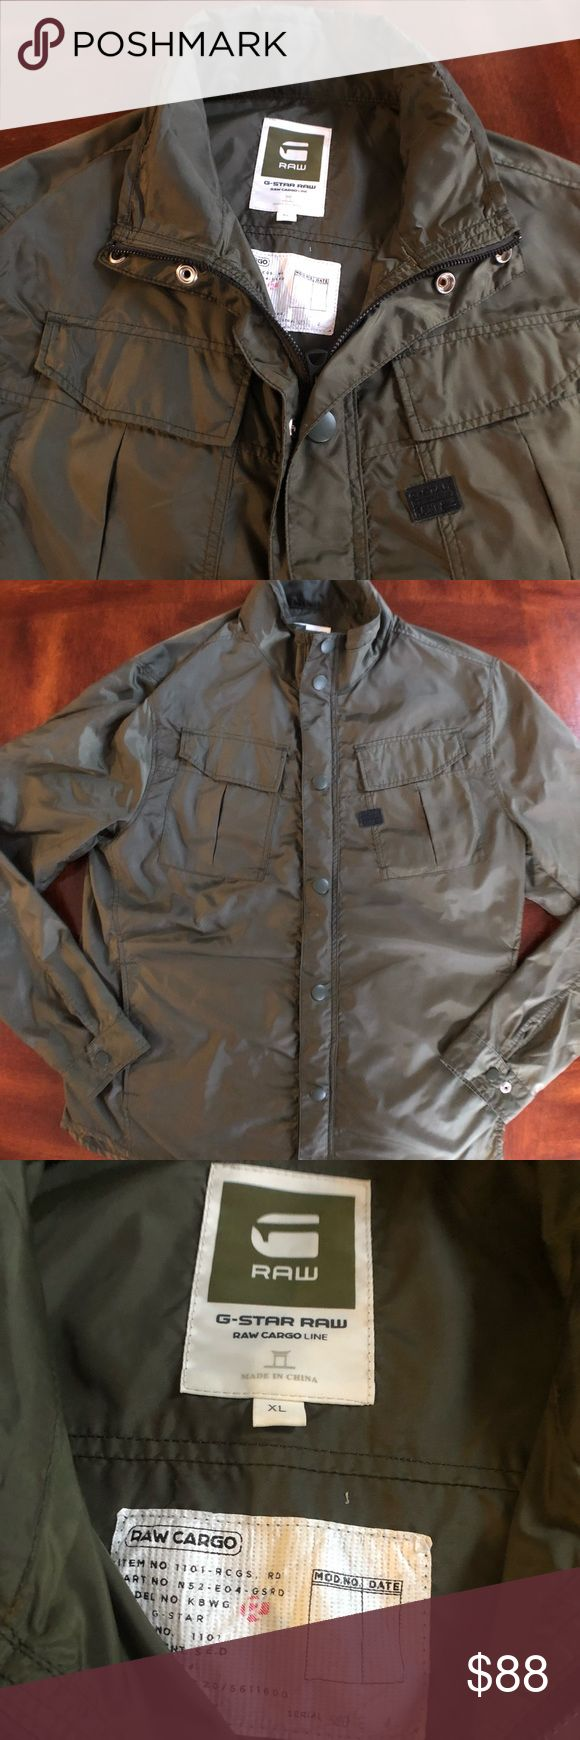 G-STAR Military field coat Men's size XL (may fit smaller) G-Star Raw lightweight Military field coat excellent condition. Very nice cut super comfortable. G-Star Jackets & Coats Military & Field